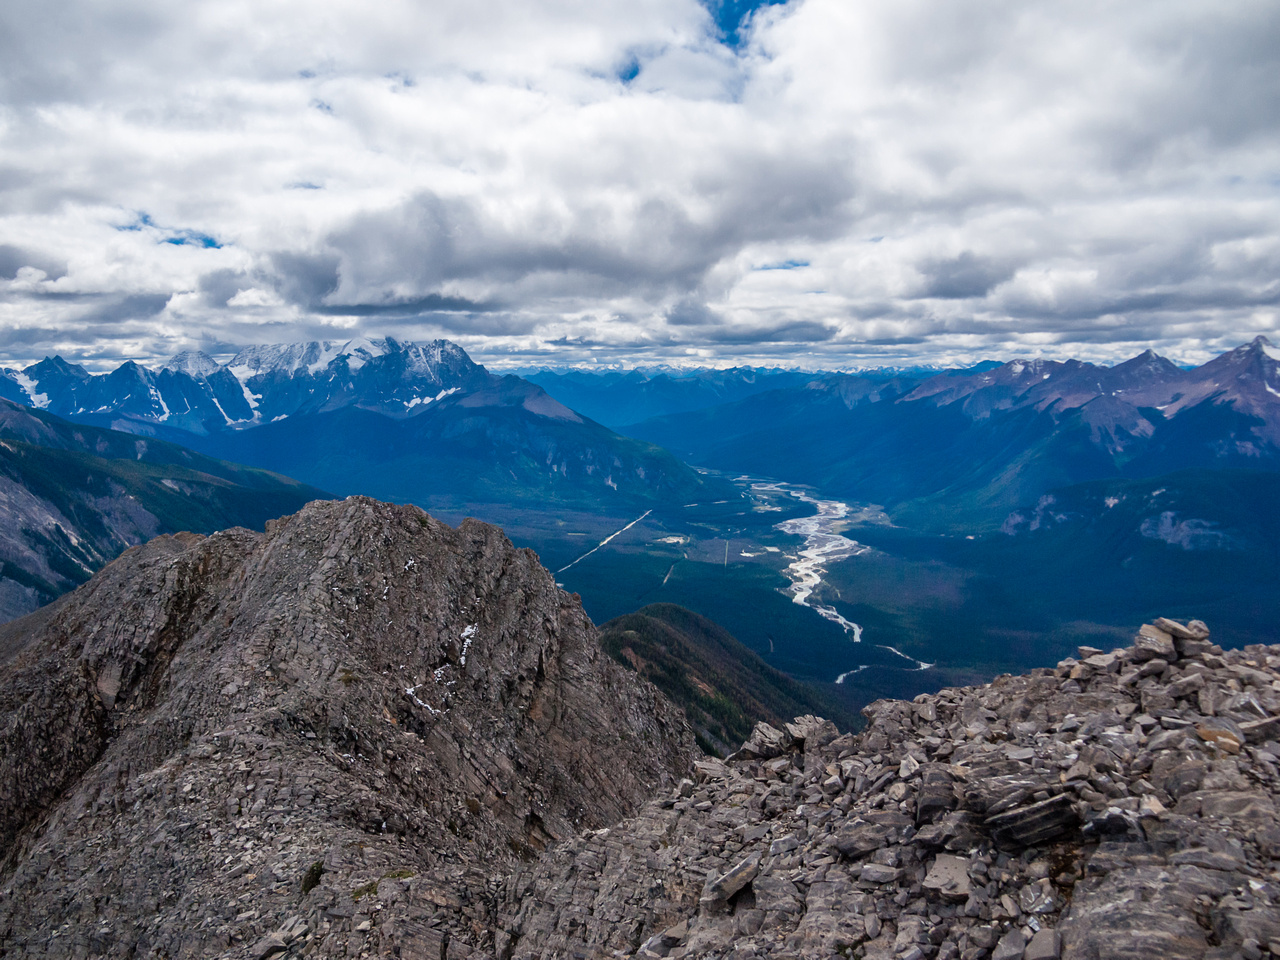 View down the TCH from the summit including Vaux and Chancellor in the clouds at left.